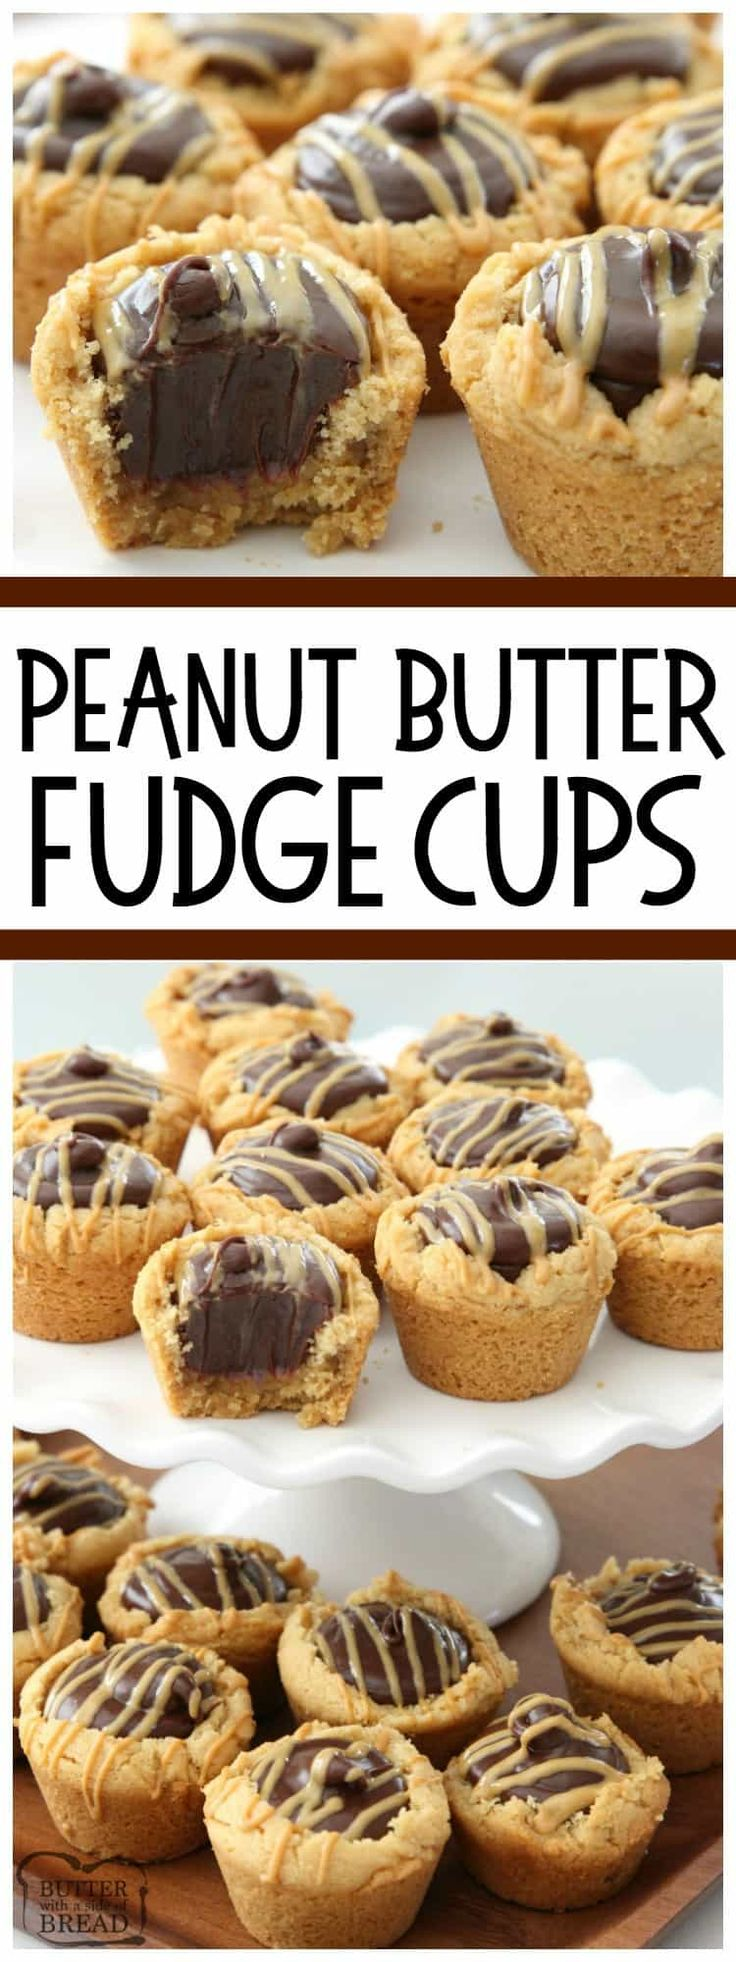 Peanut Butter Fudge Cups are peanut butter cookies filled with a simple chocolate fudge! (=)